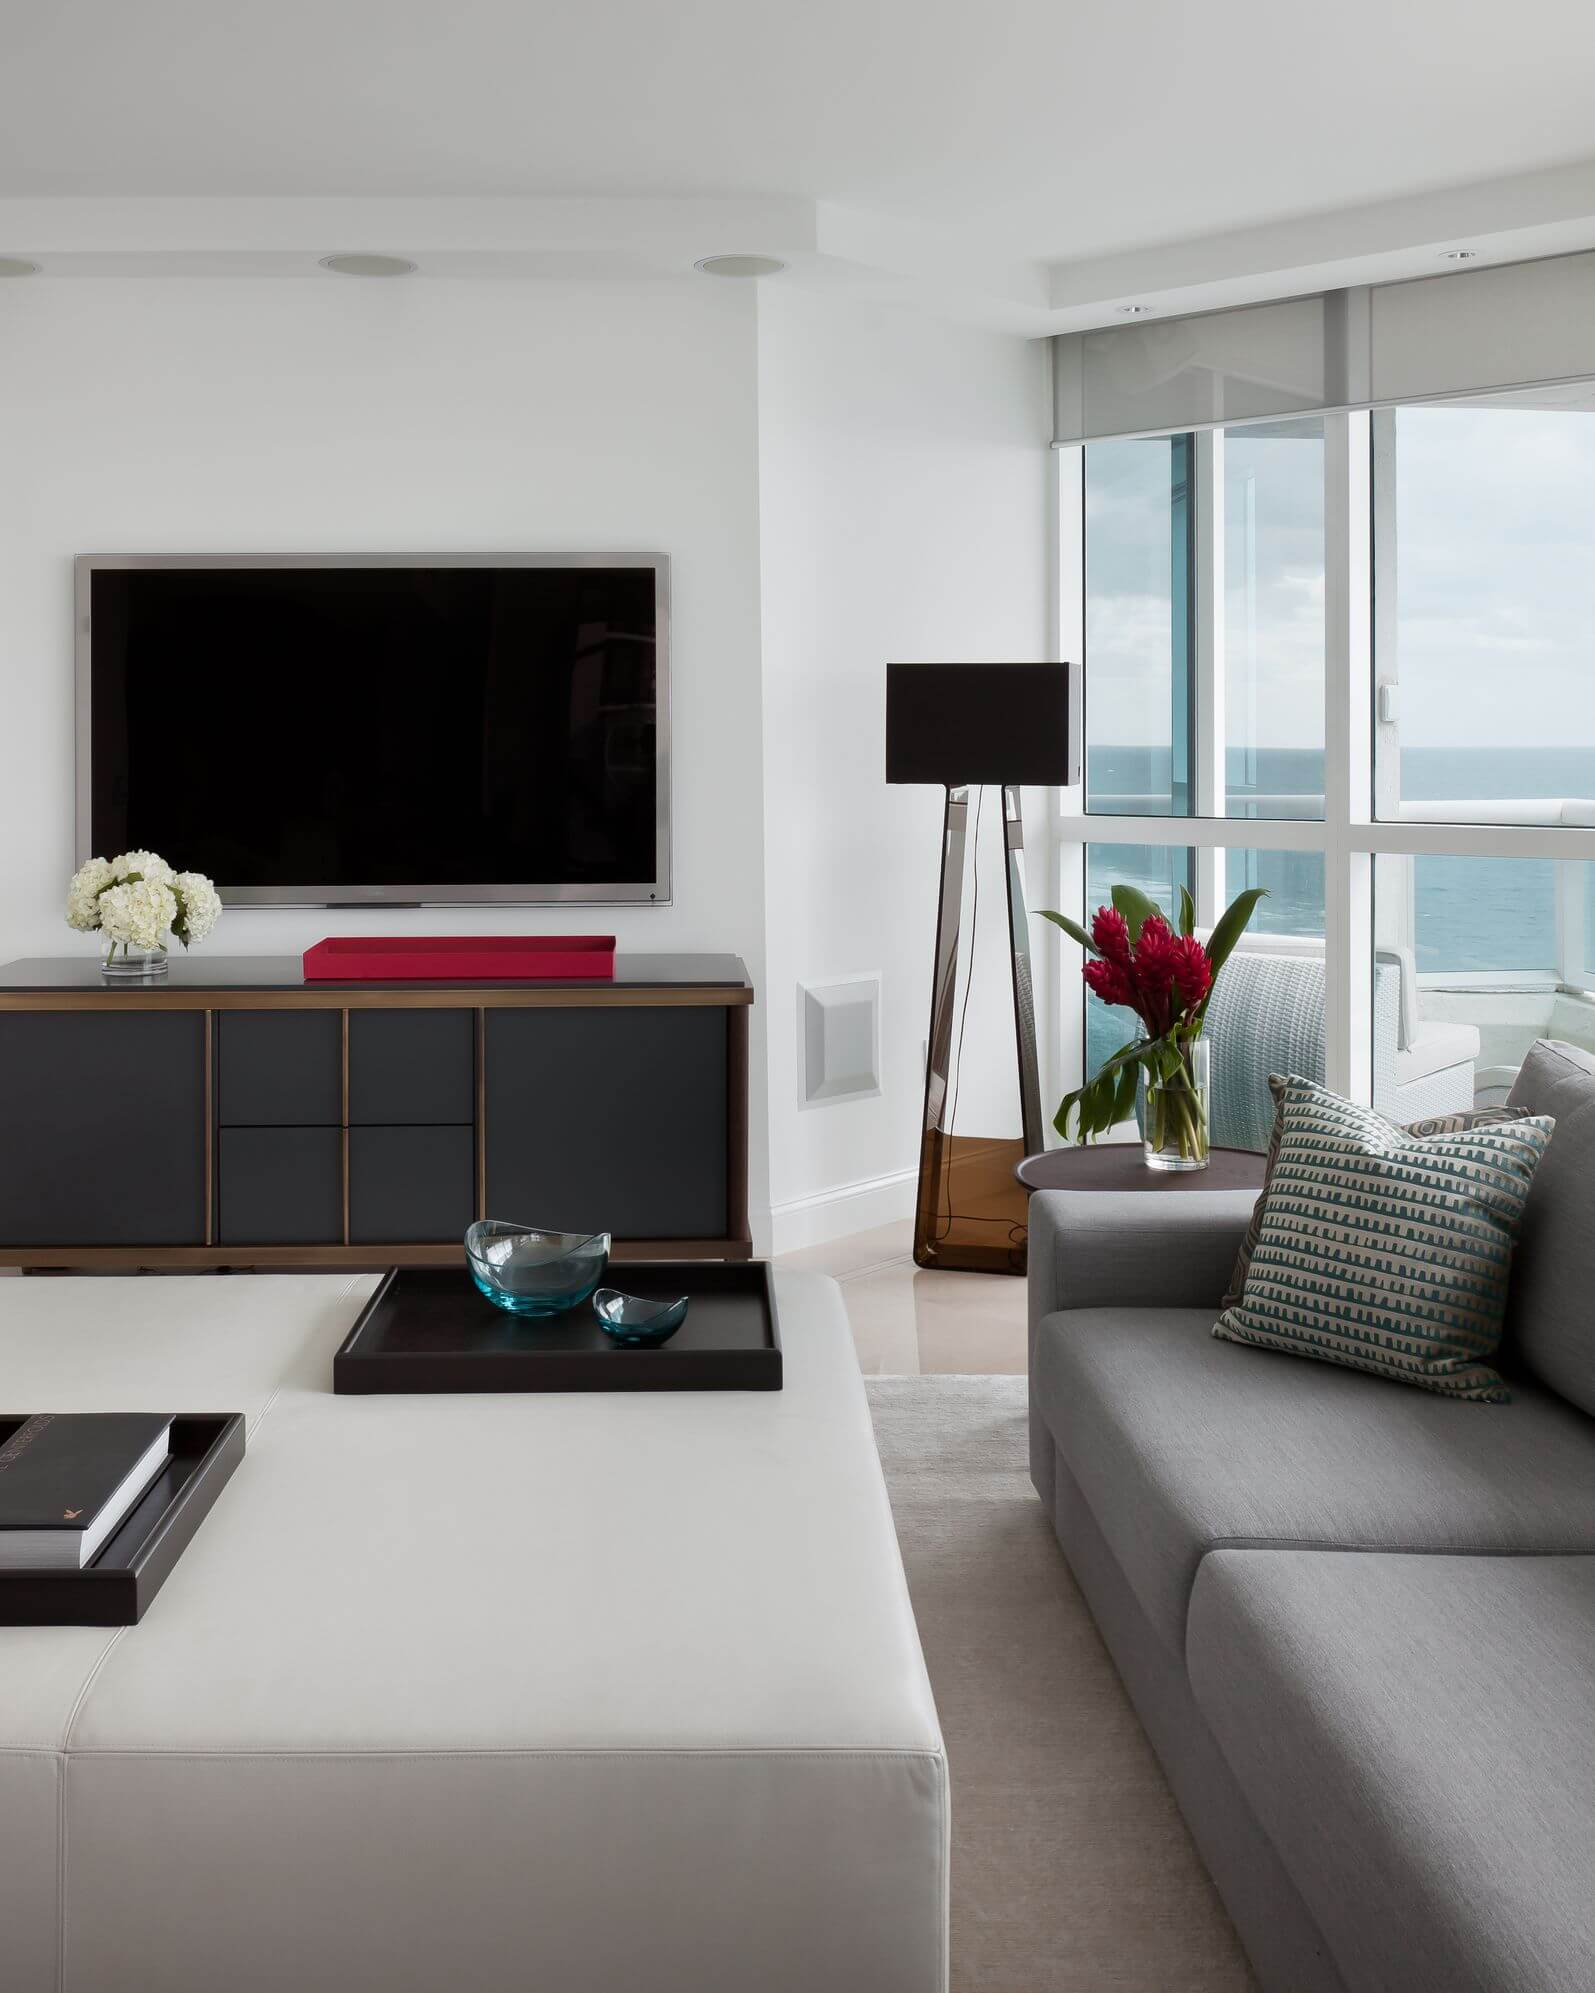 Slick Textures In This Modern Living Room Include Minimalist Wood Media Center And Offwhite